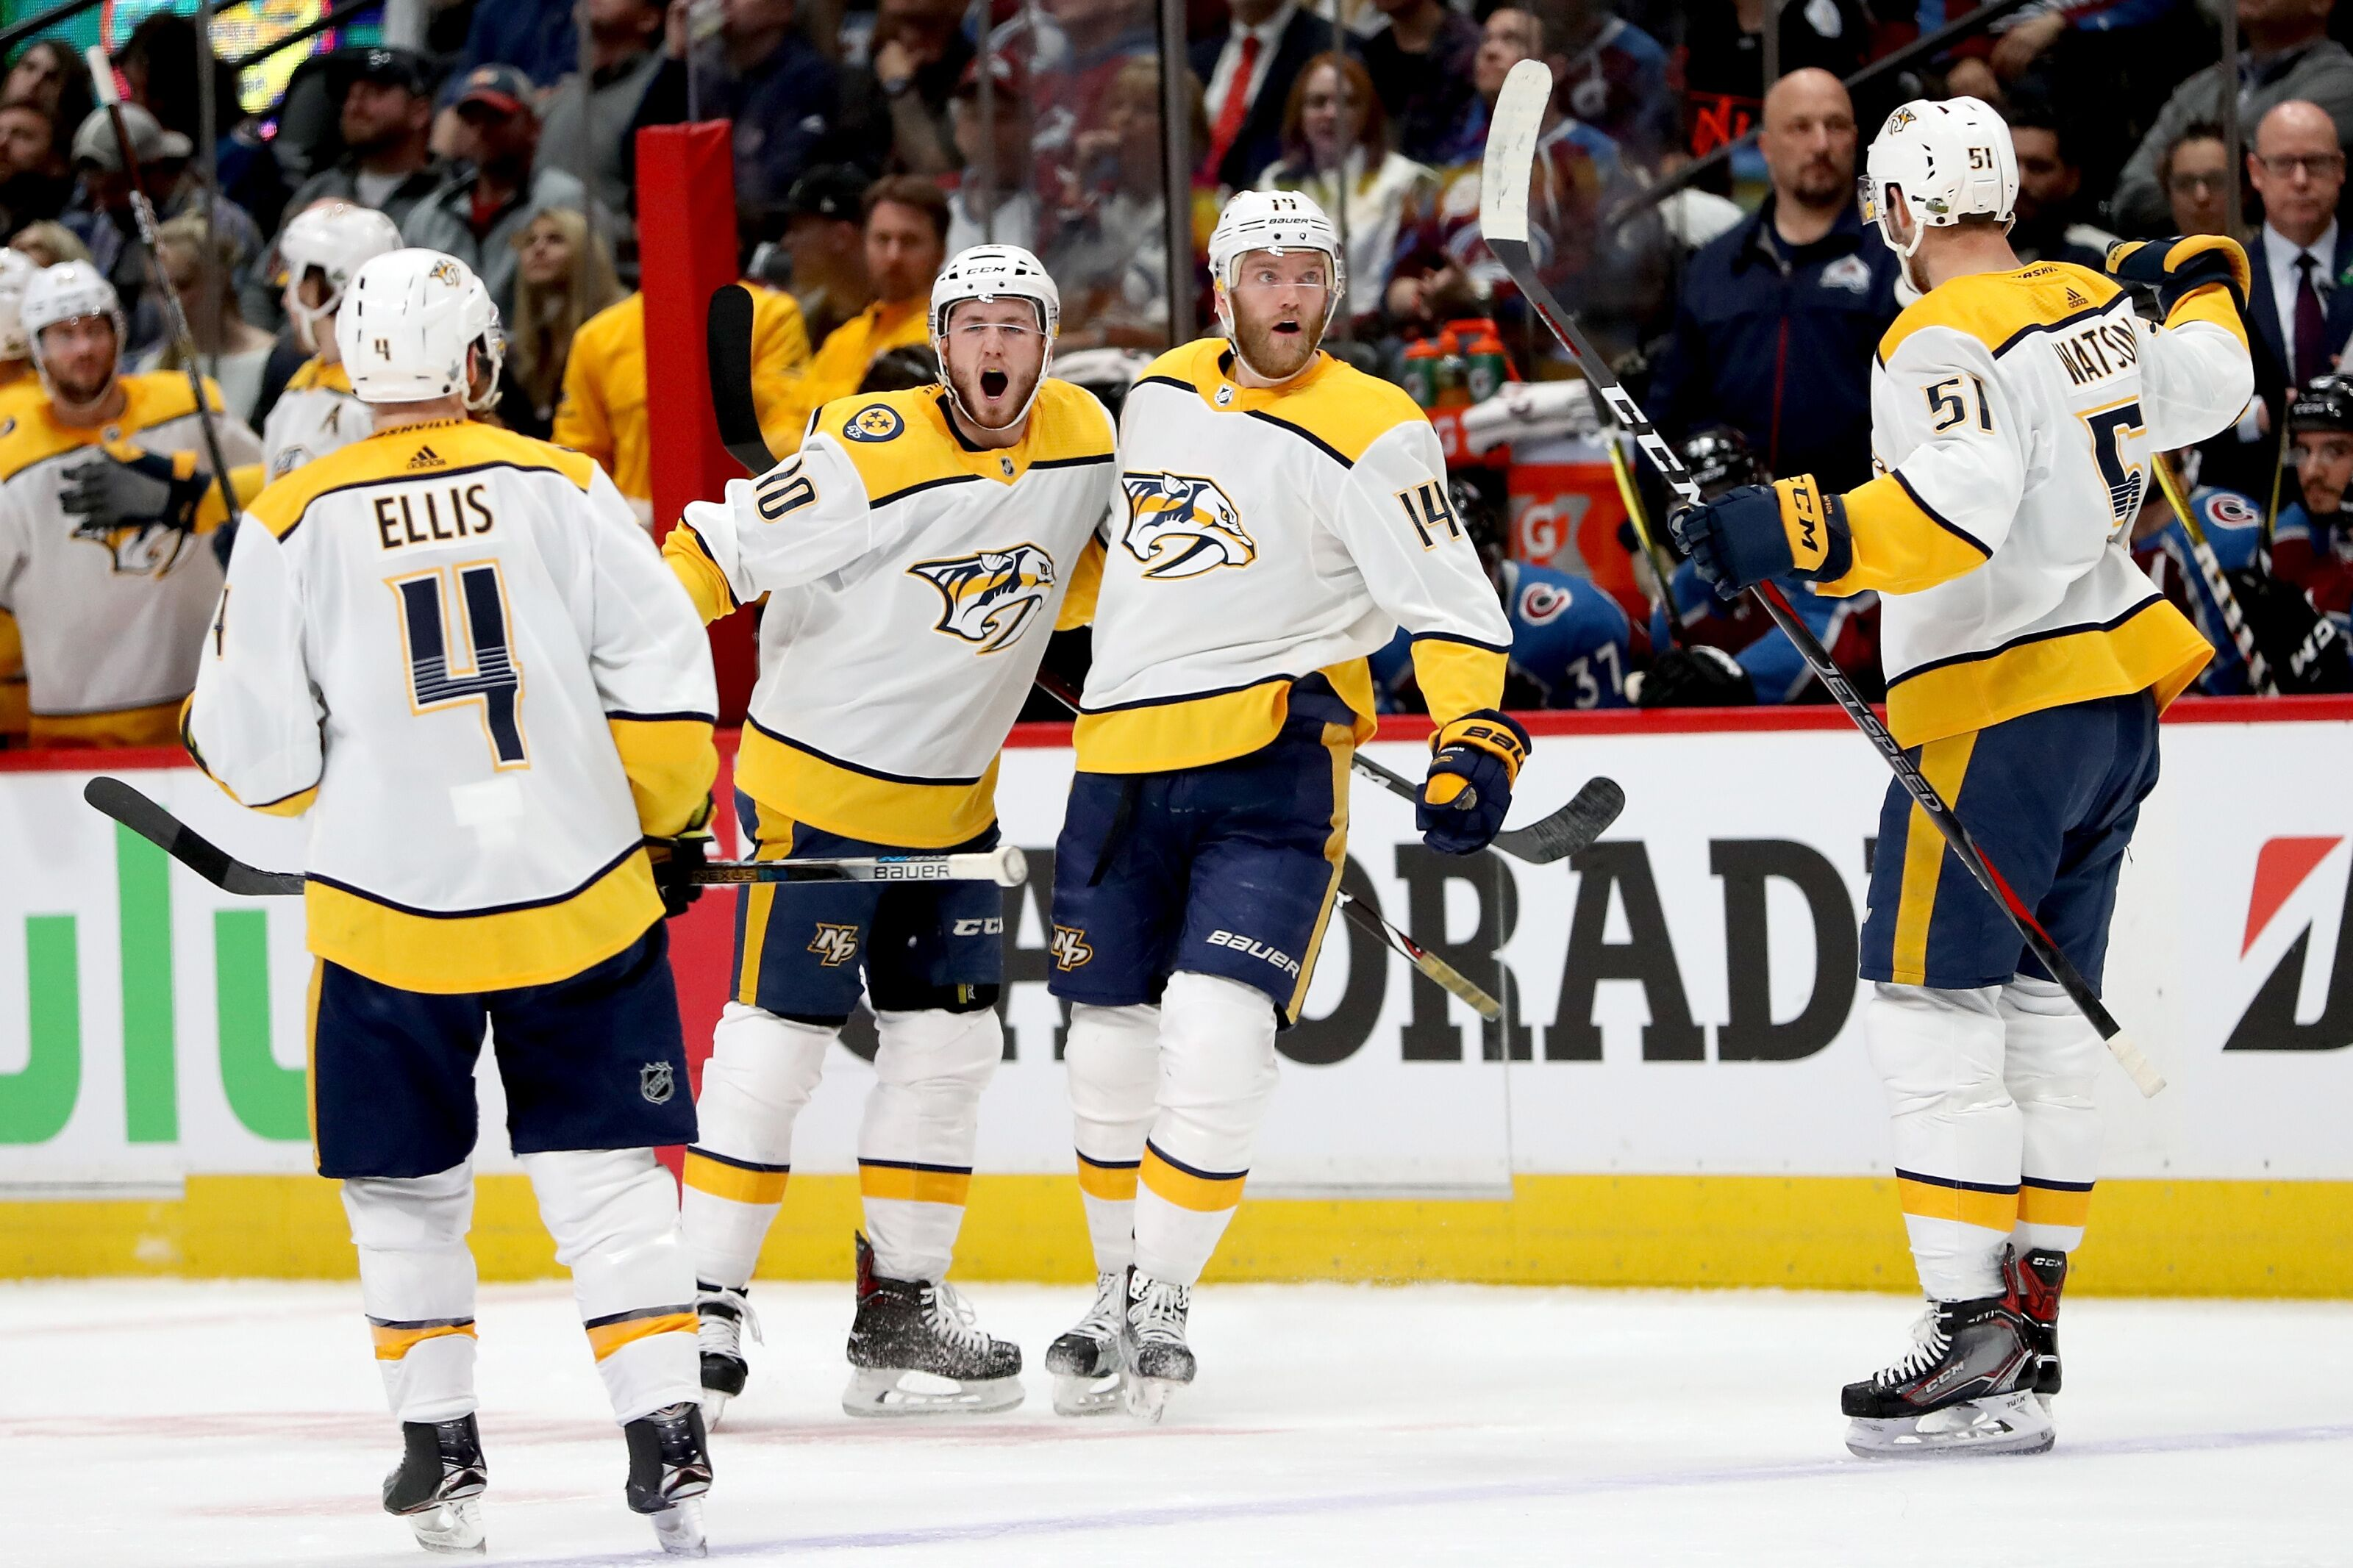 950121260-nashville-predators-v-colorado-avalanche-game-six.jpg